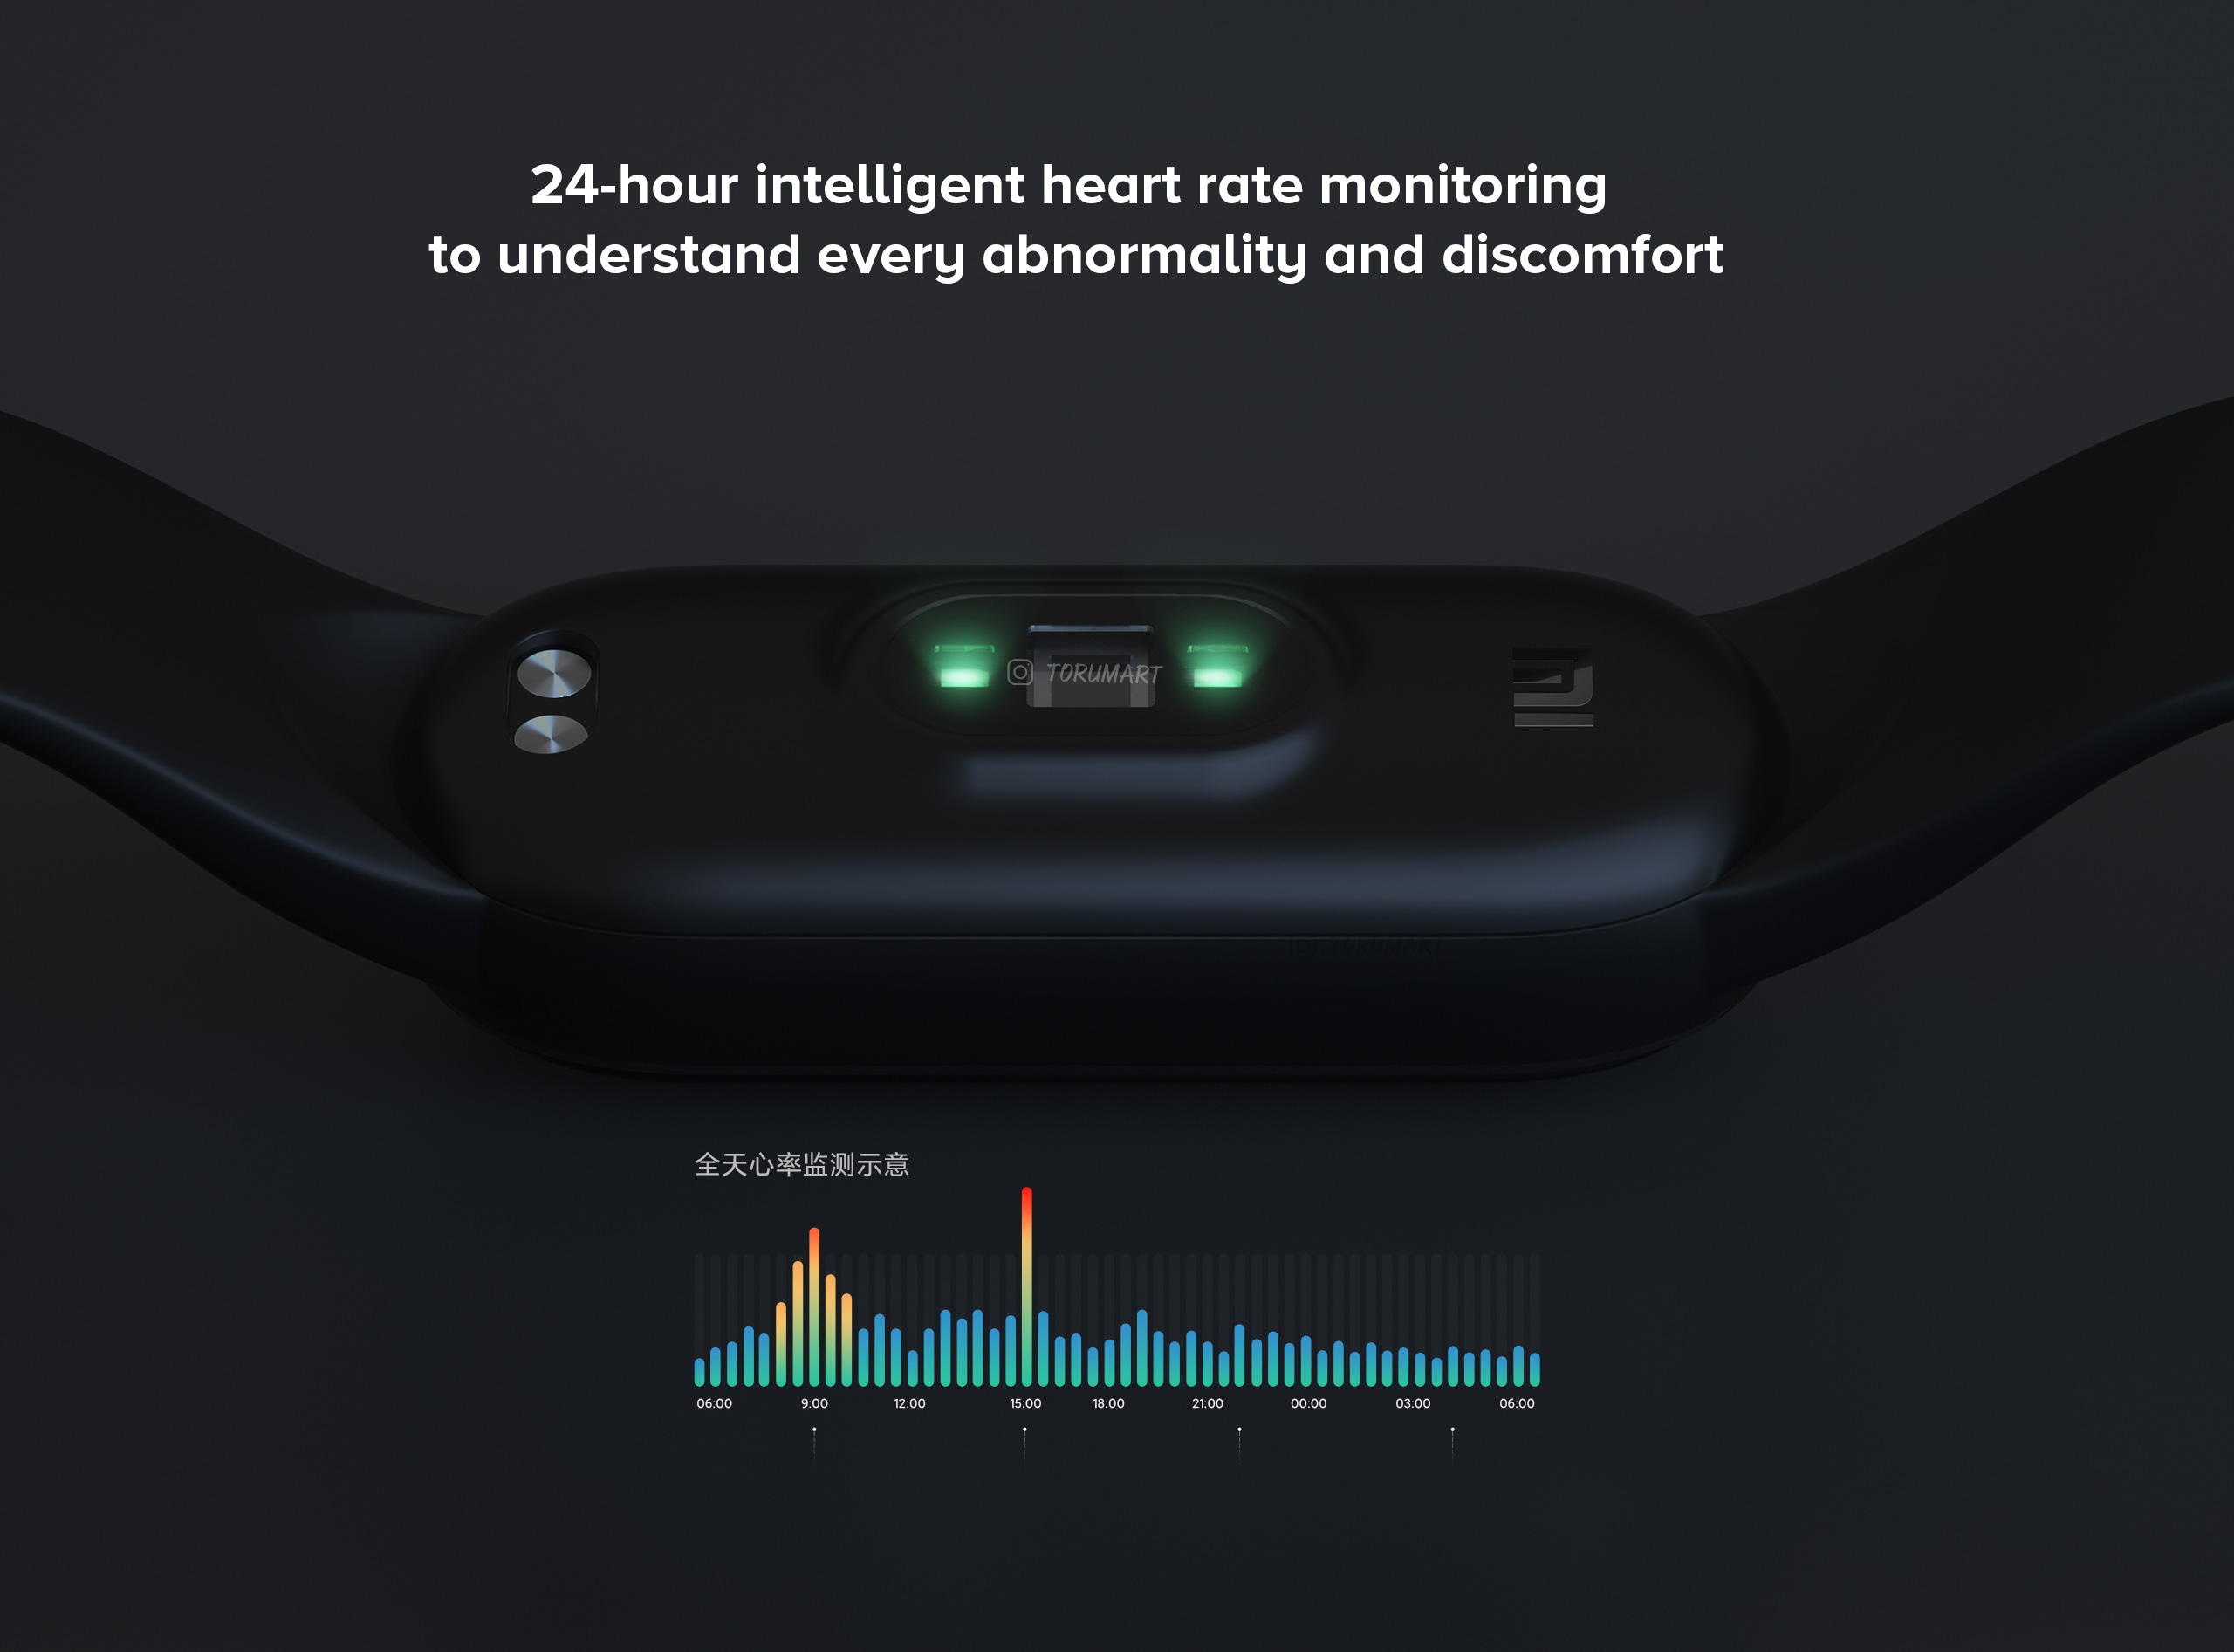 24-hour intelligent heart rate monitoring to understand every abnormality and discomfort